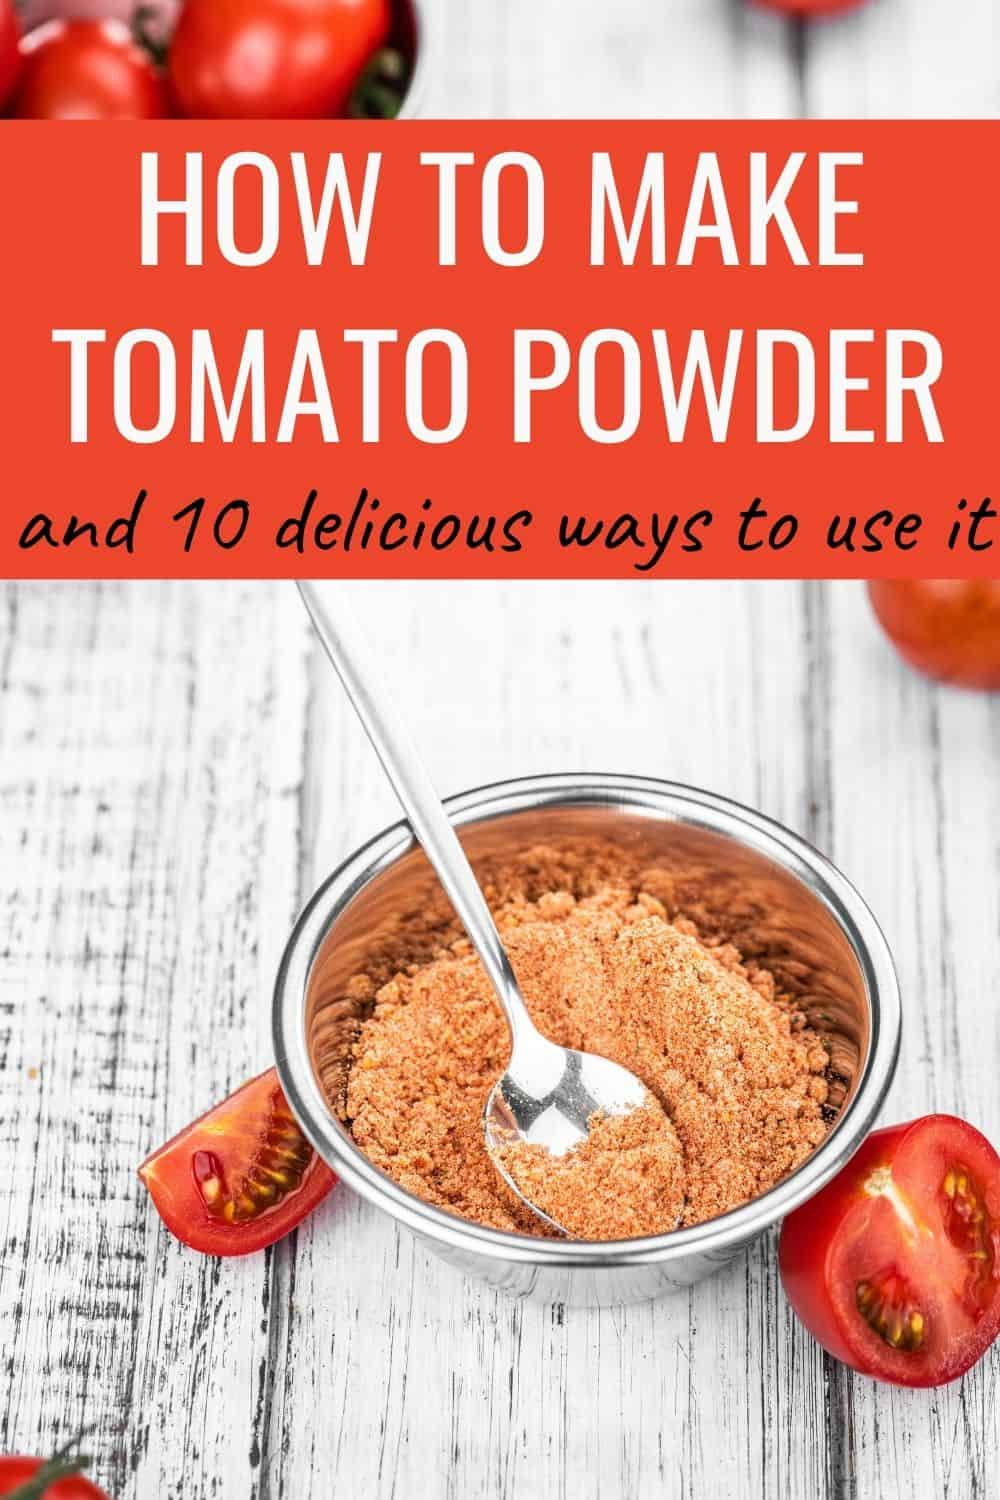 How to make tomato powder and 10 delicious ways to use it